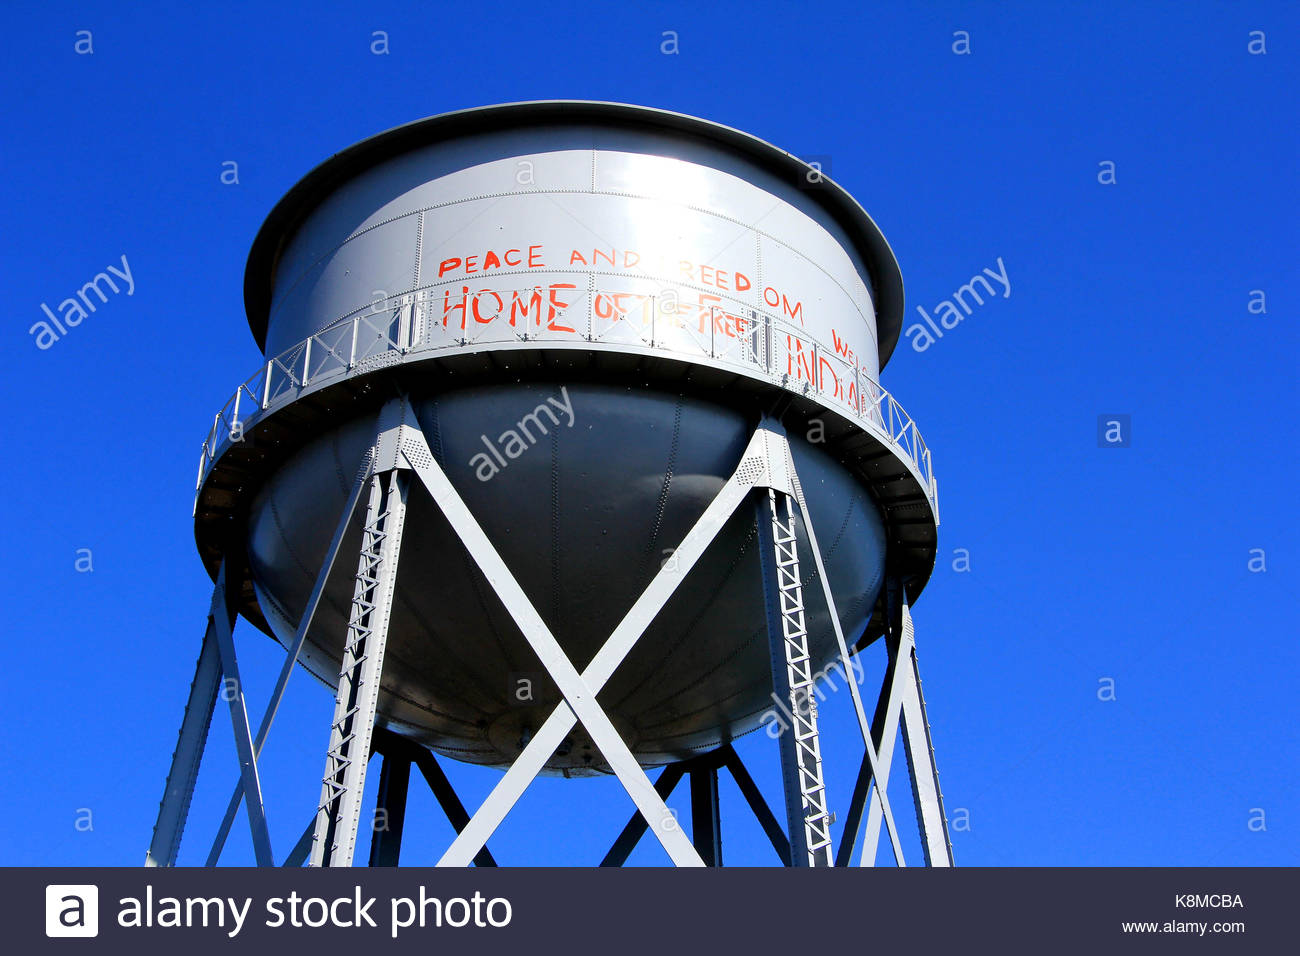 Water Tower at Alcatraz Island Federal Penitentiary. - Stock Image